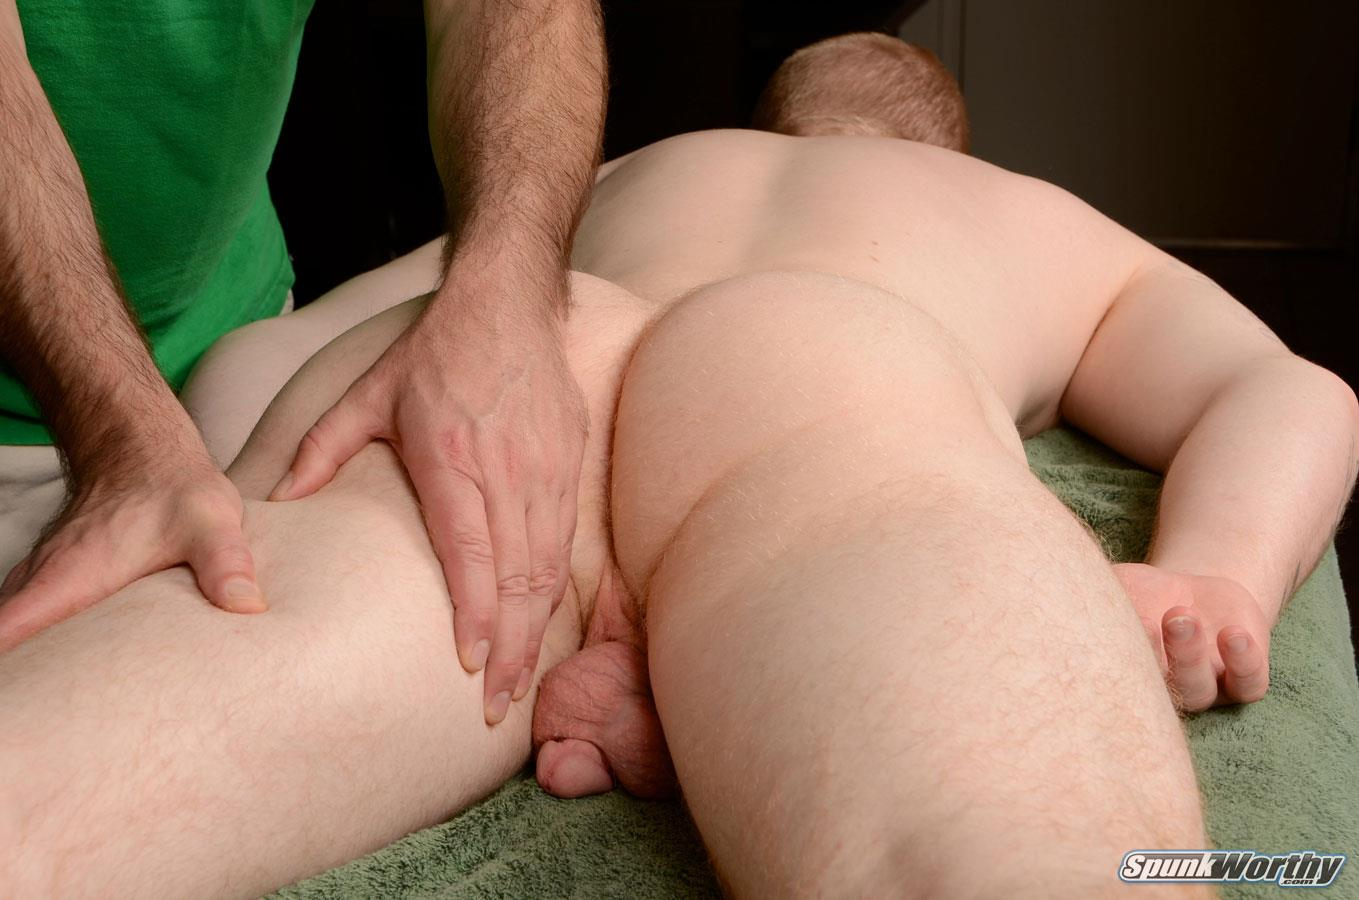 Spunkworthy-Perry-Straight-Redhead-Gets-Massage-With-Happy-Ending-Amateur-Gay-Porn-06 Amateur Straight Redhead Gets A Massage With A Happy Ending